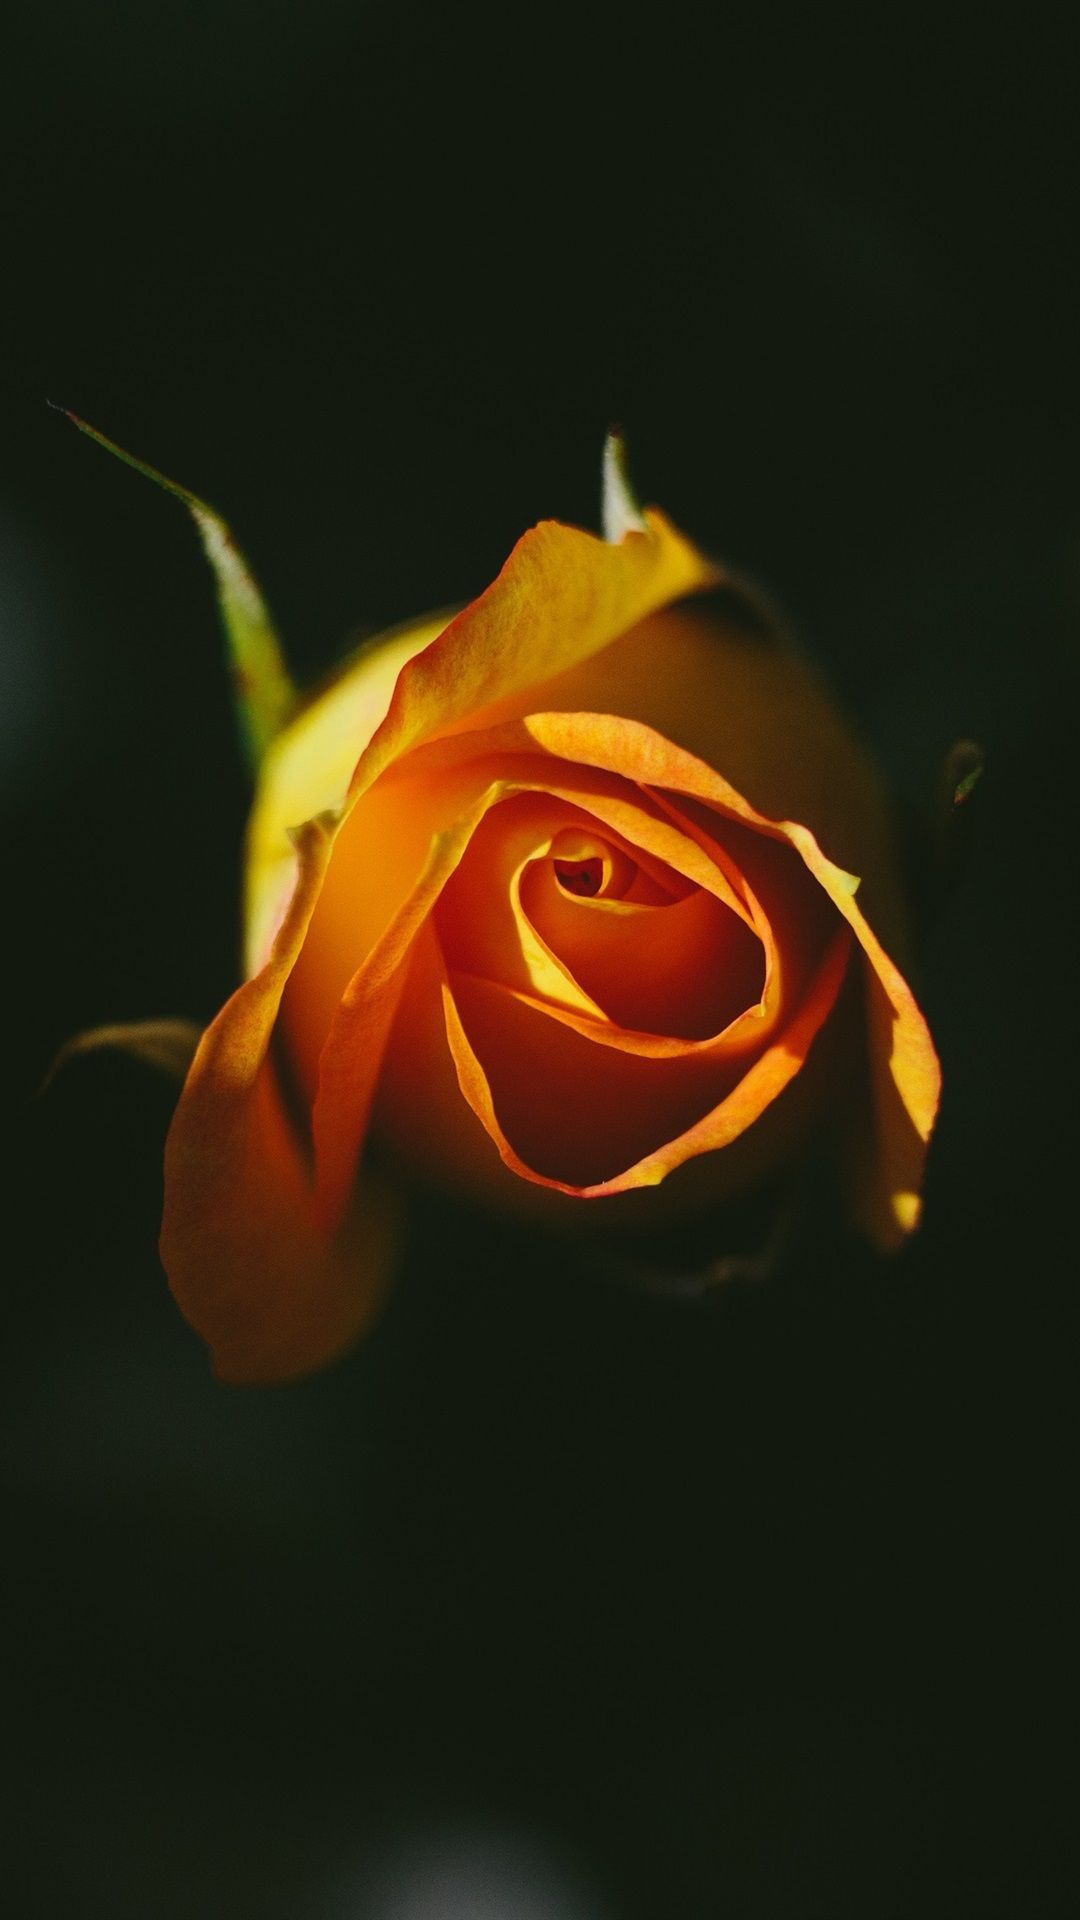 1080x1920 Orange rose, black background 1080x1920 iPhone 8/7/6/6S Plus ...